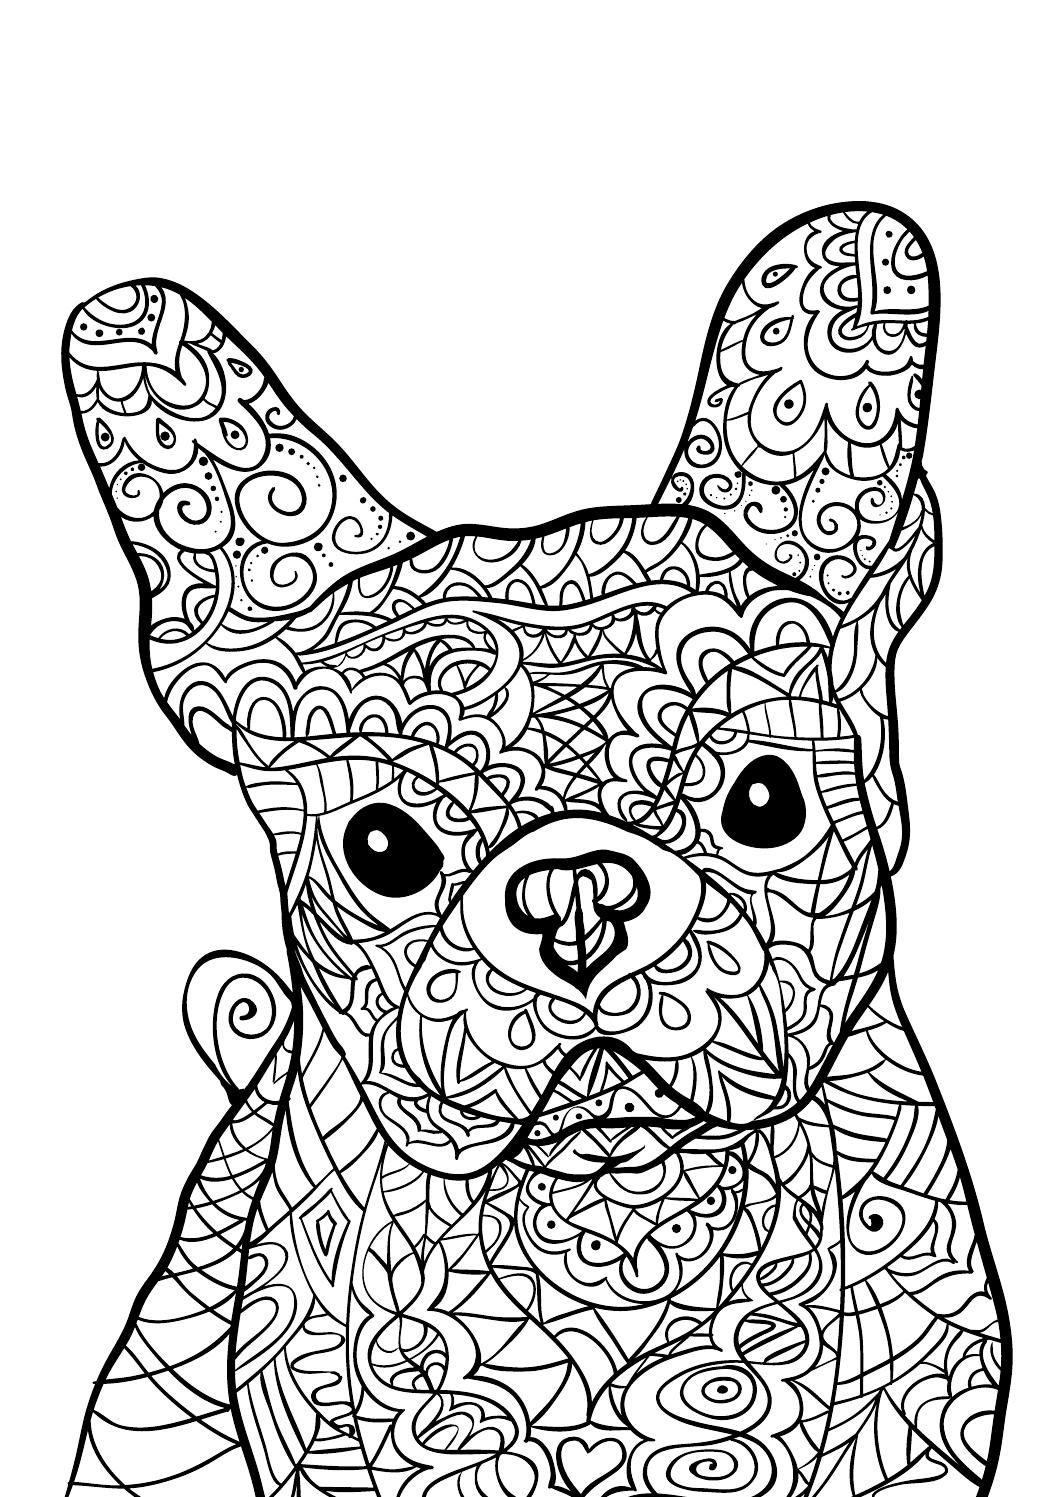 Colour Calm 07 Sampler Dog Coloring Book Dog Coloring Page Coloring Books